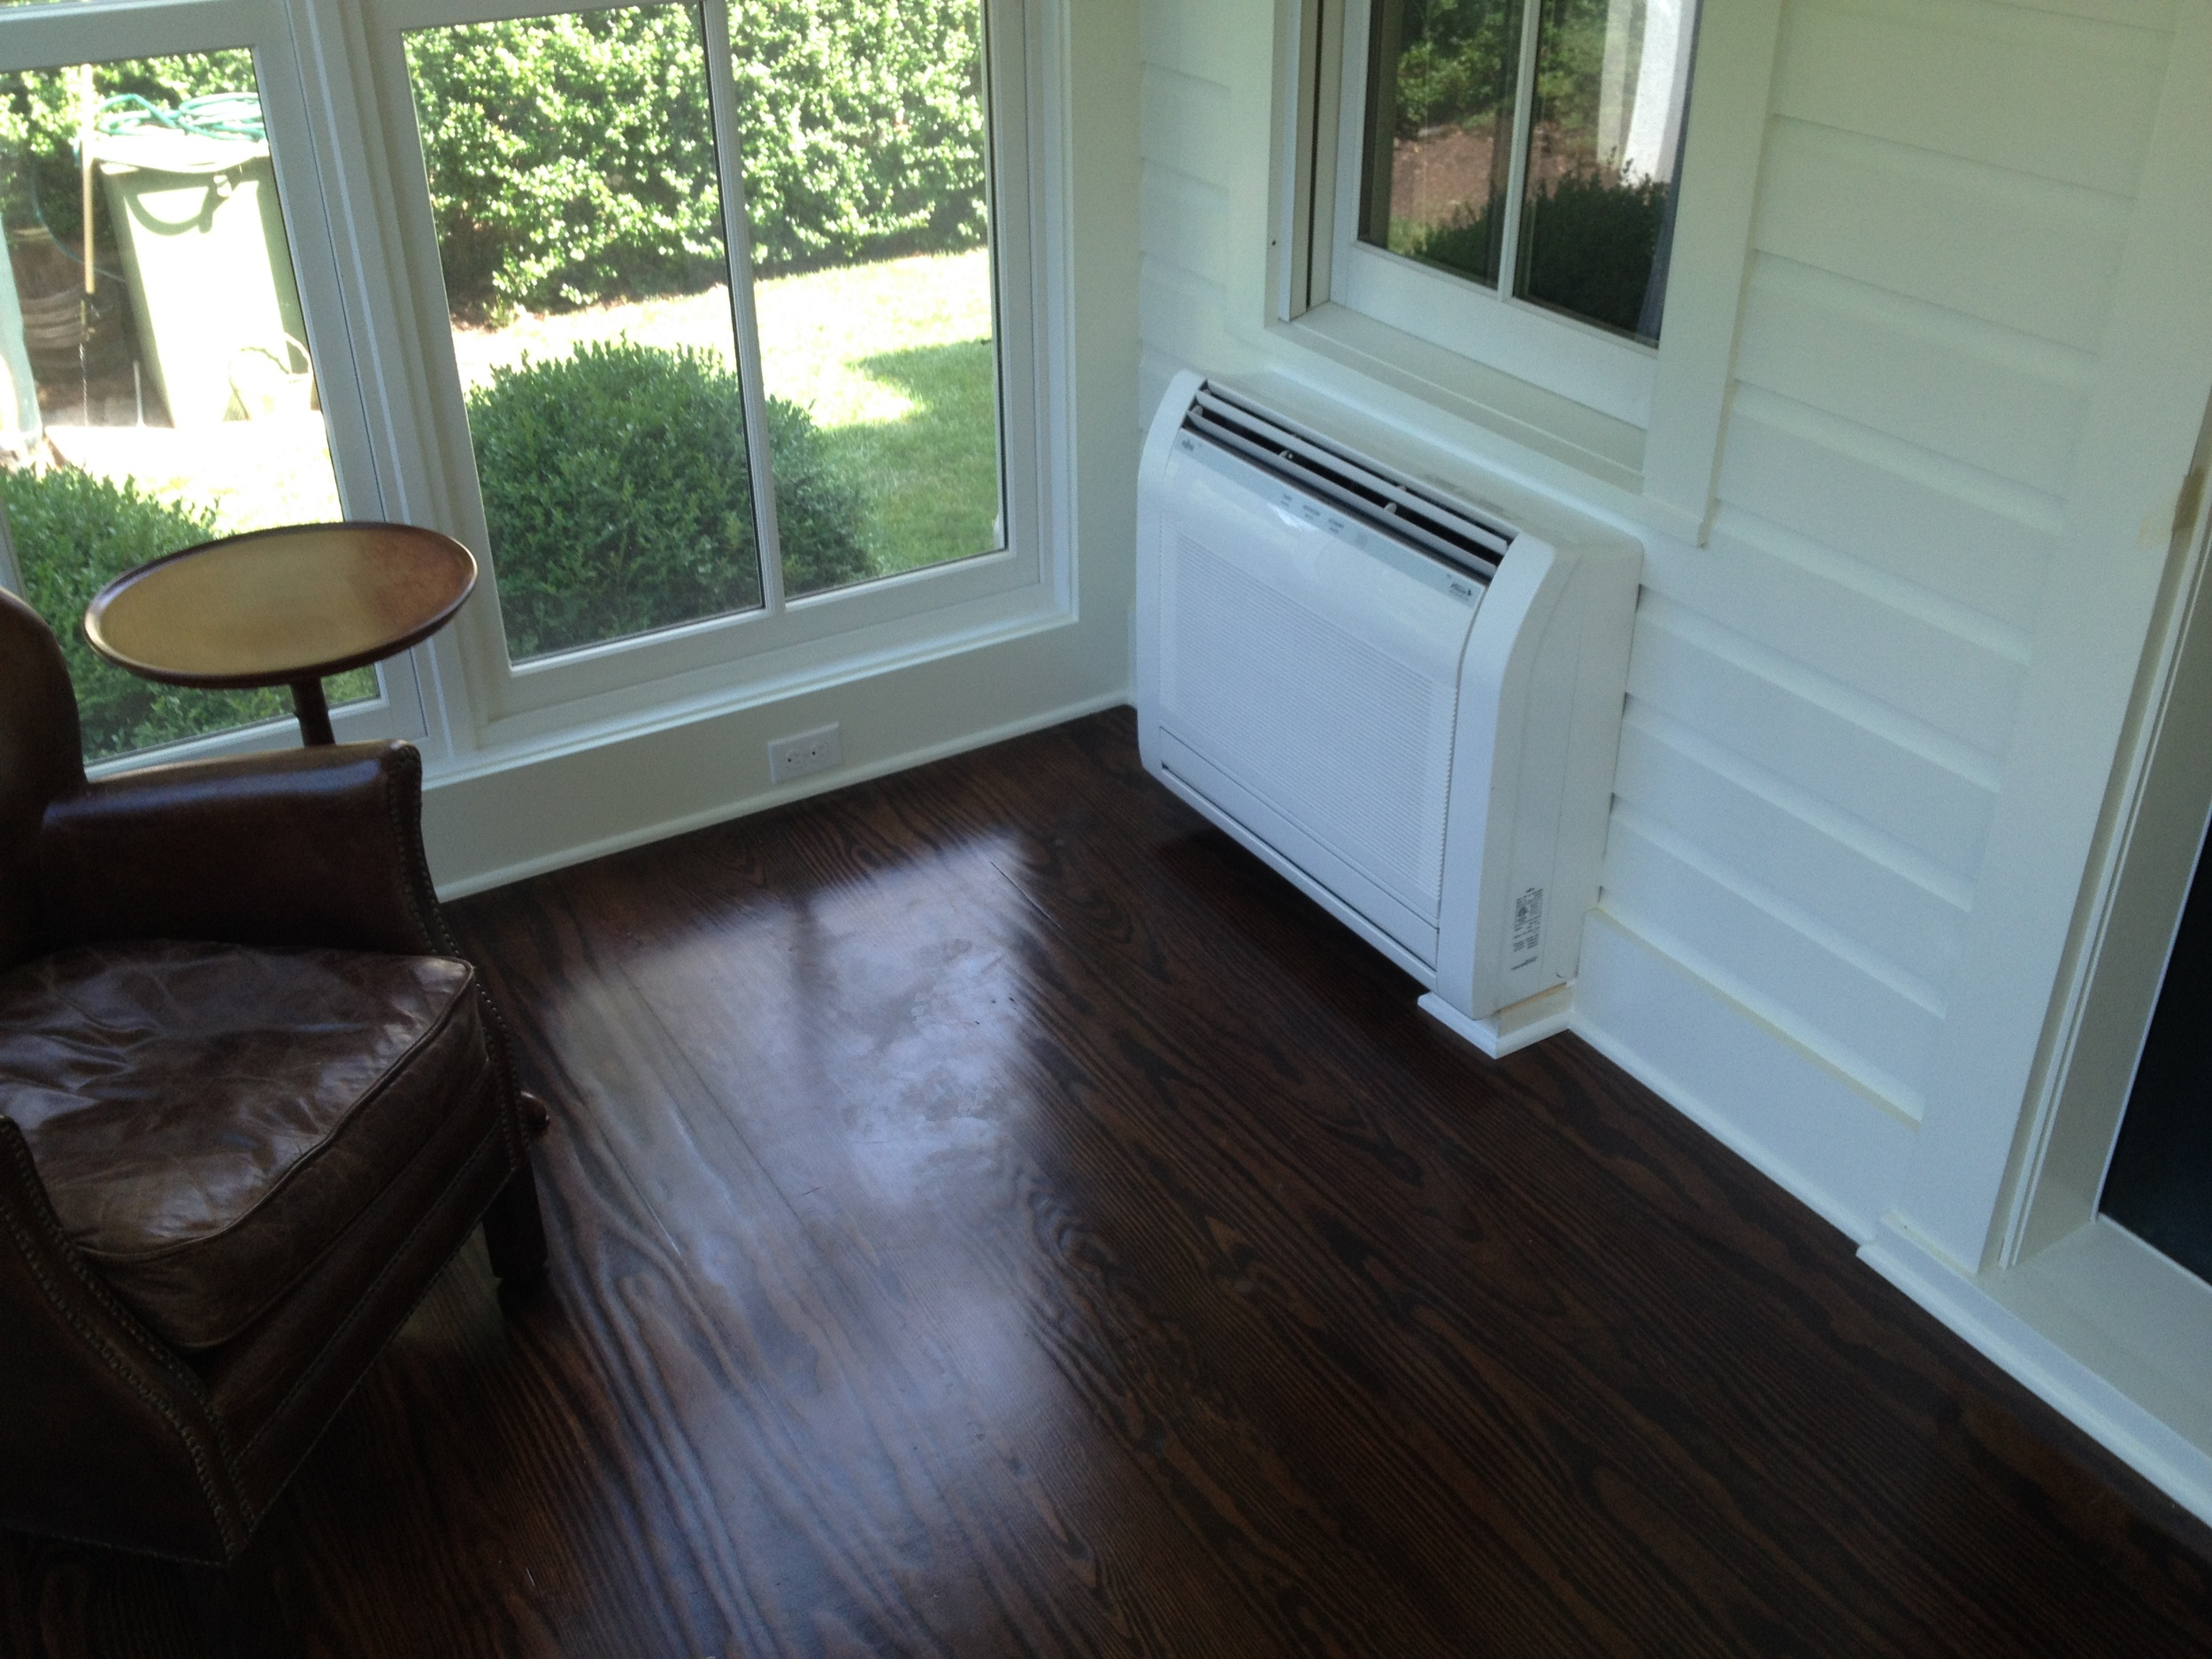 A porch was enclosed using Marvin windows and an over sized door. A new HVAC system was included